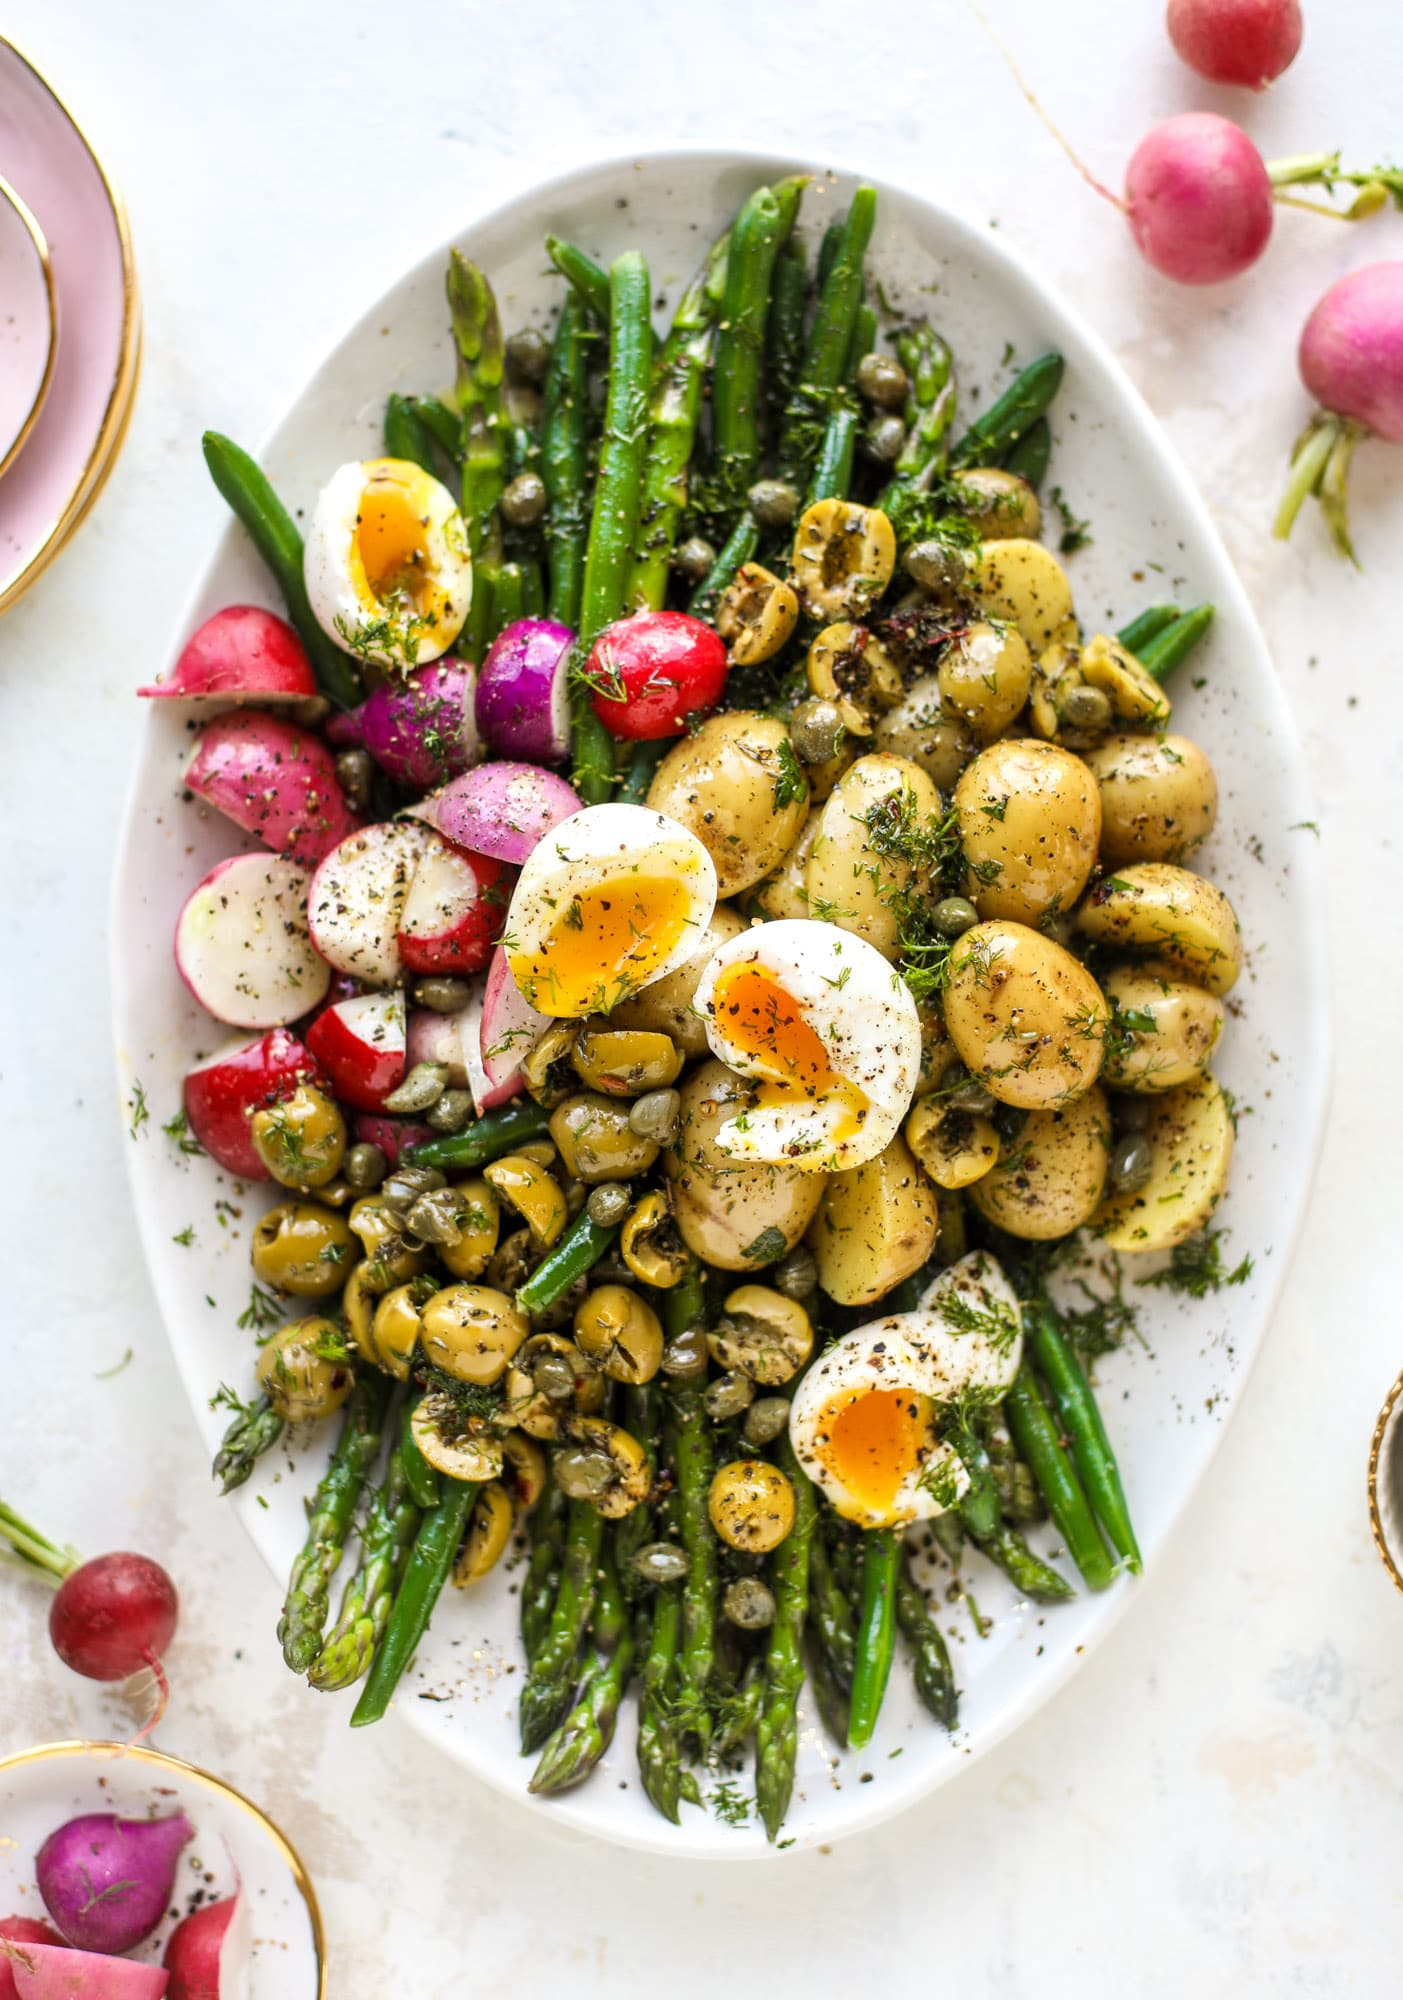 This spring version of the nicoise salad is loaded with crunchy green beans and asparagus, gorgeous radishes, tender potatoes and salty olives.